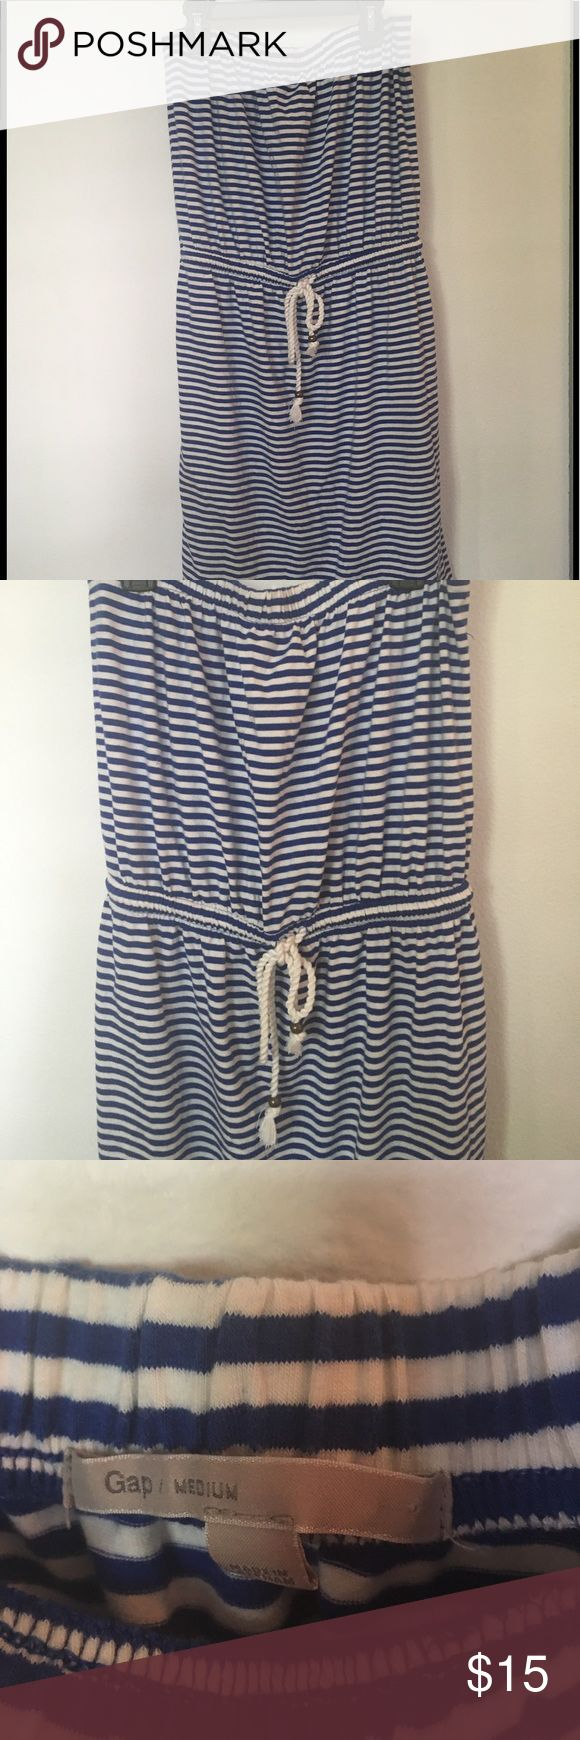 Gap striped nautical dress Perfectly cute nautical gap tube dress. Elastic waist with rope tie. Like new condition, very nice weight to fabric. It's a classic! GAP Dresses Strapless